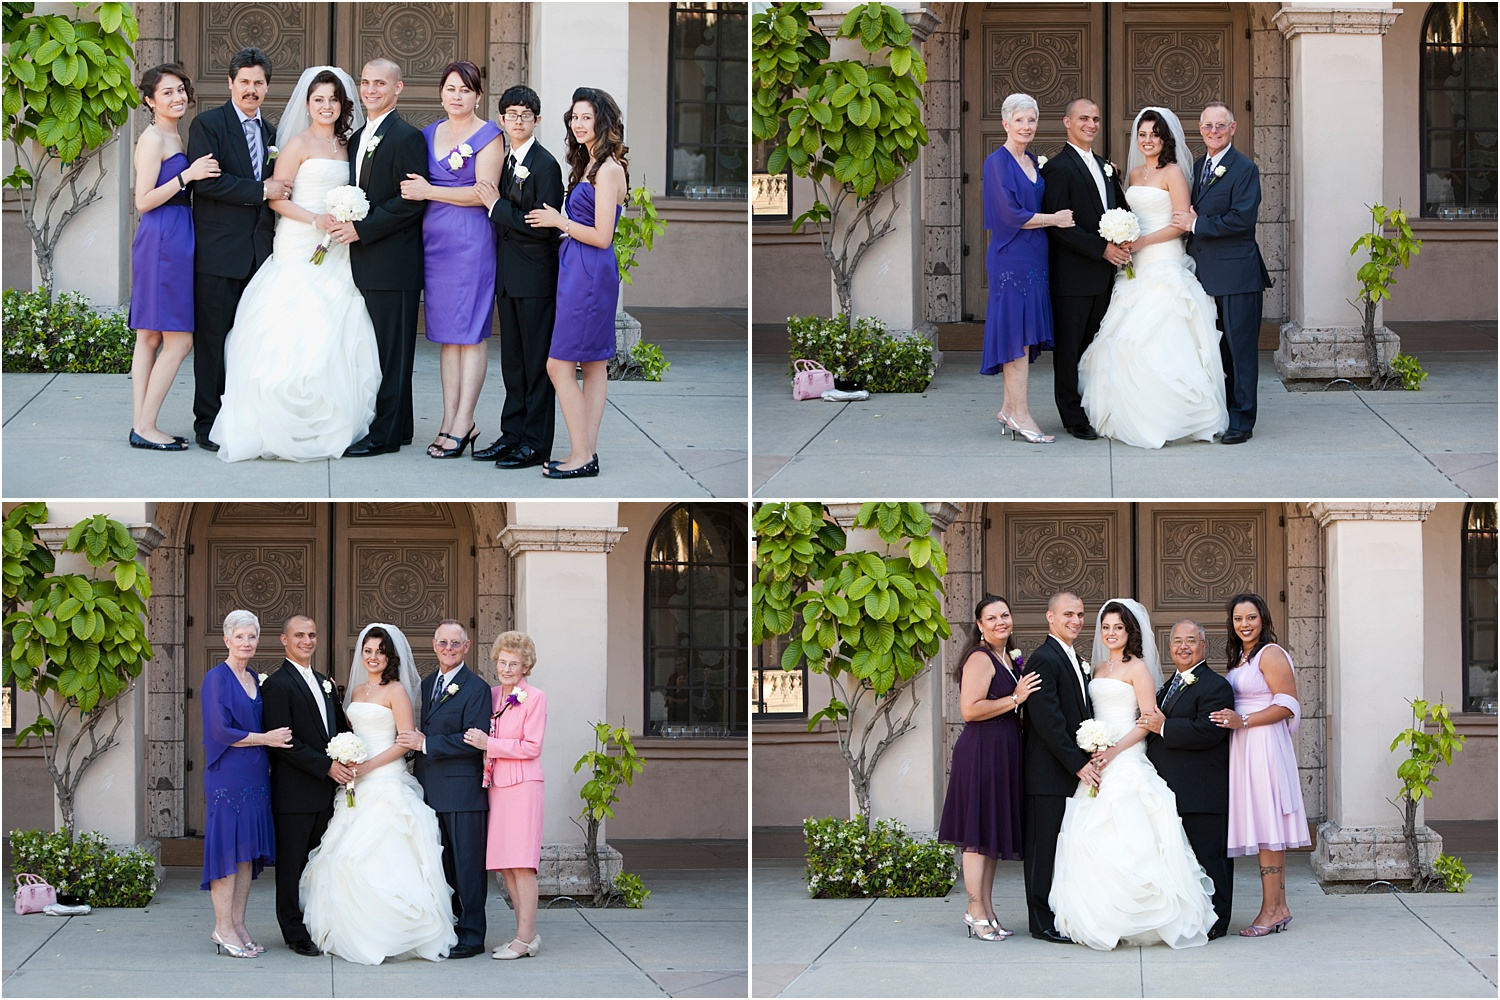 How to photograph family and bridal party portraits quickly at weddings 2